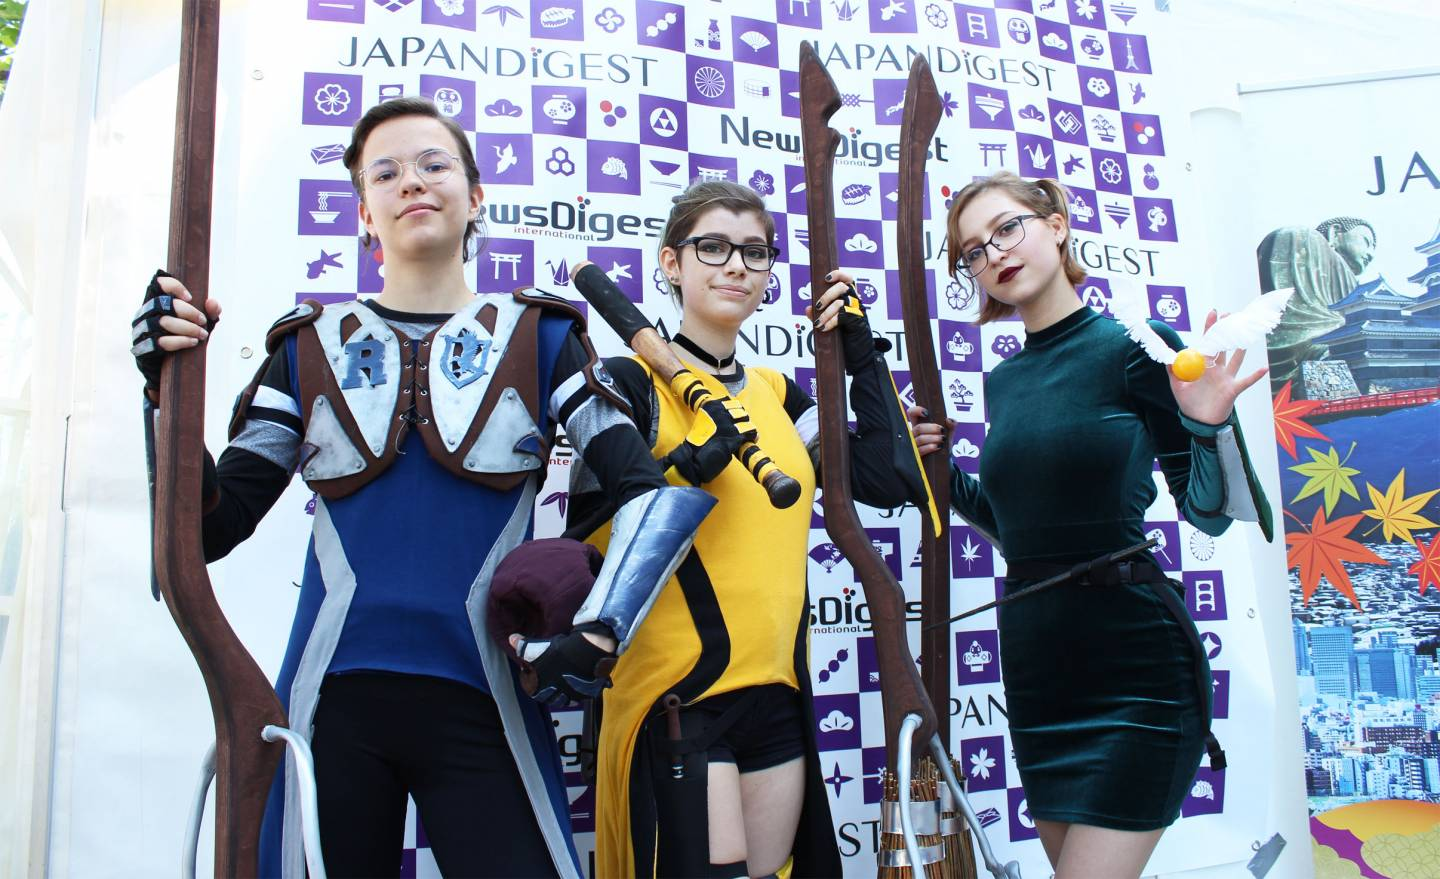 Quidditch cosplay